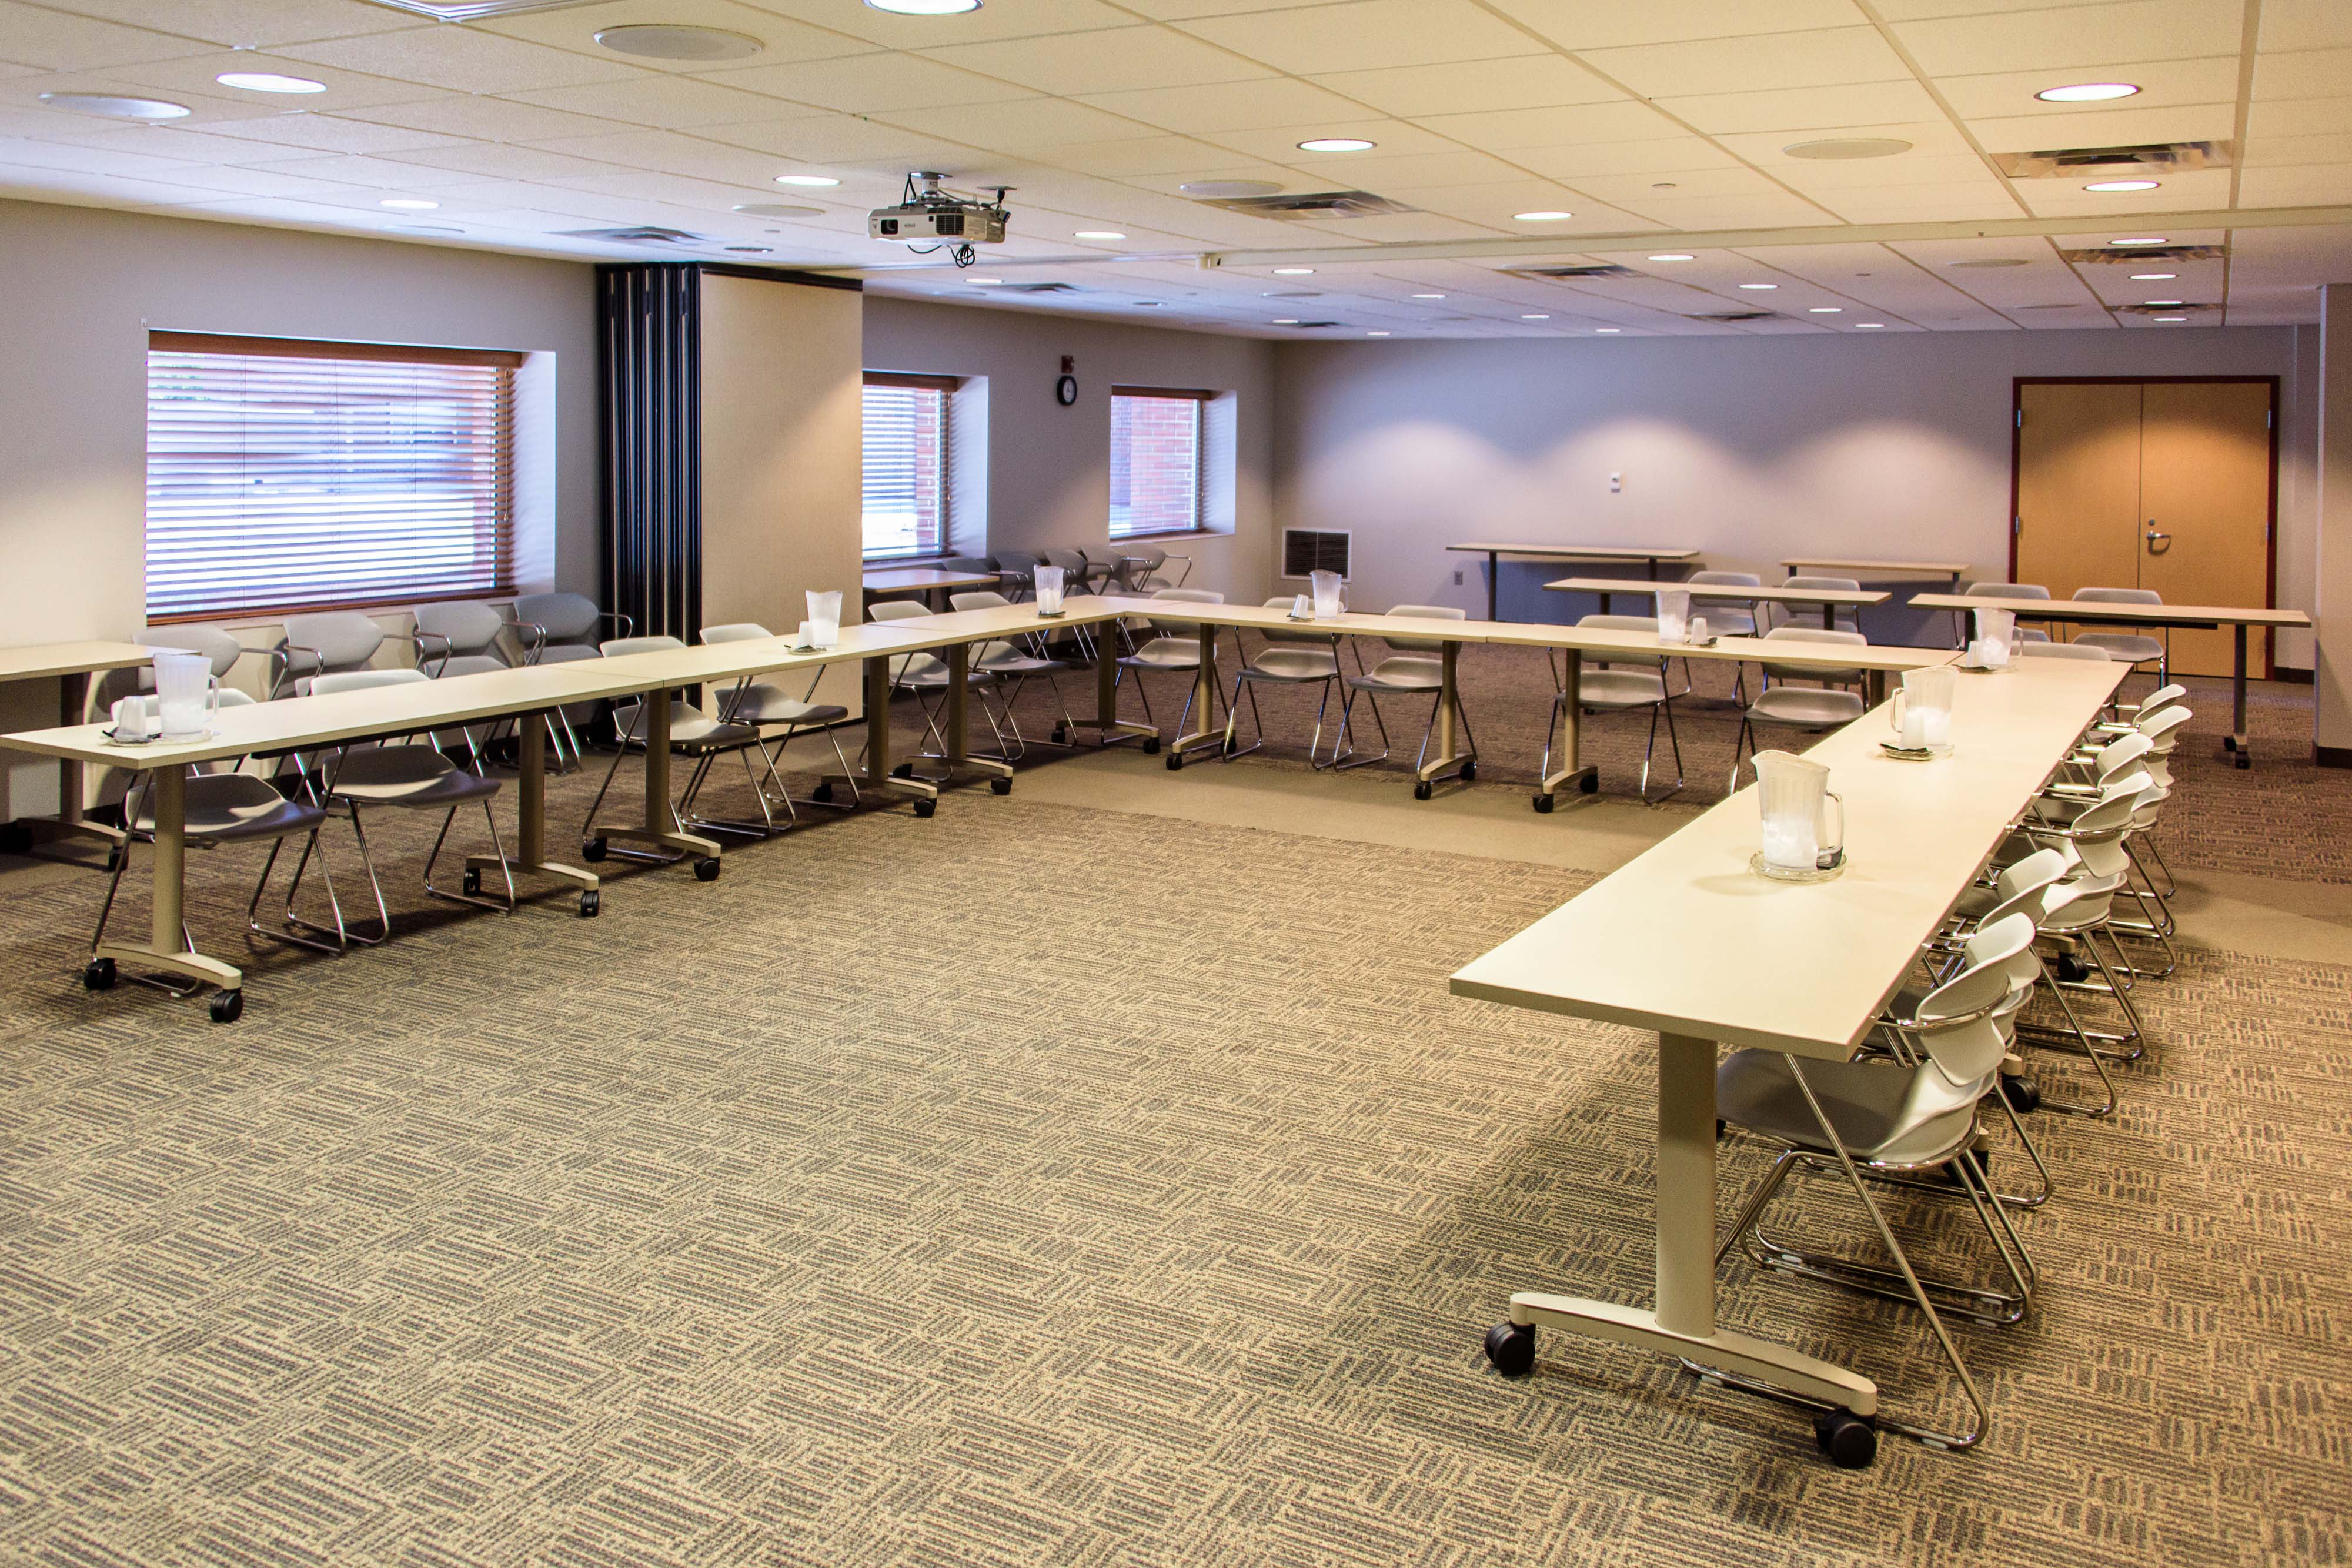 An angle showcasing the tables and seating in the Shawnee-Porter Care Conference Room